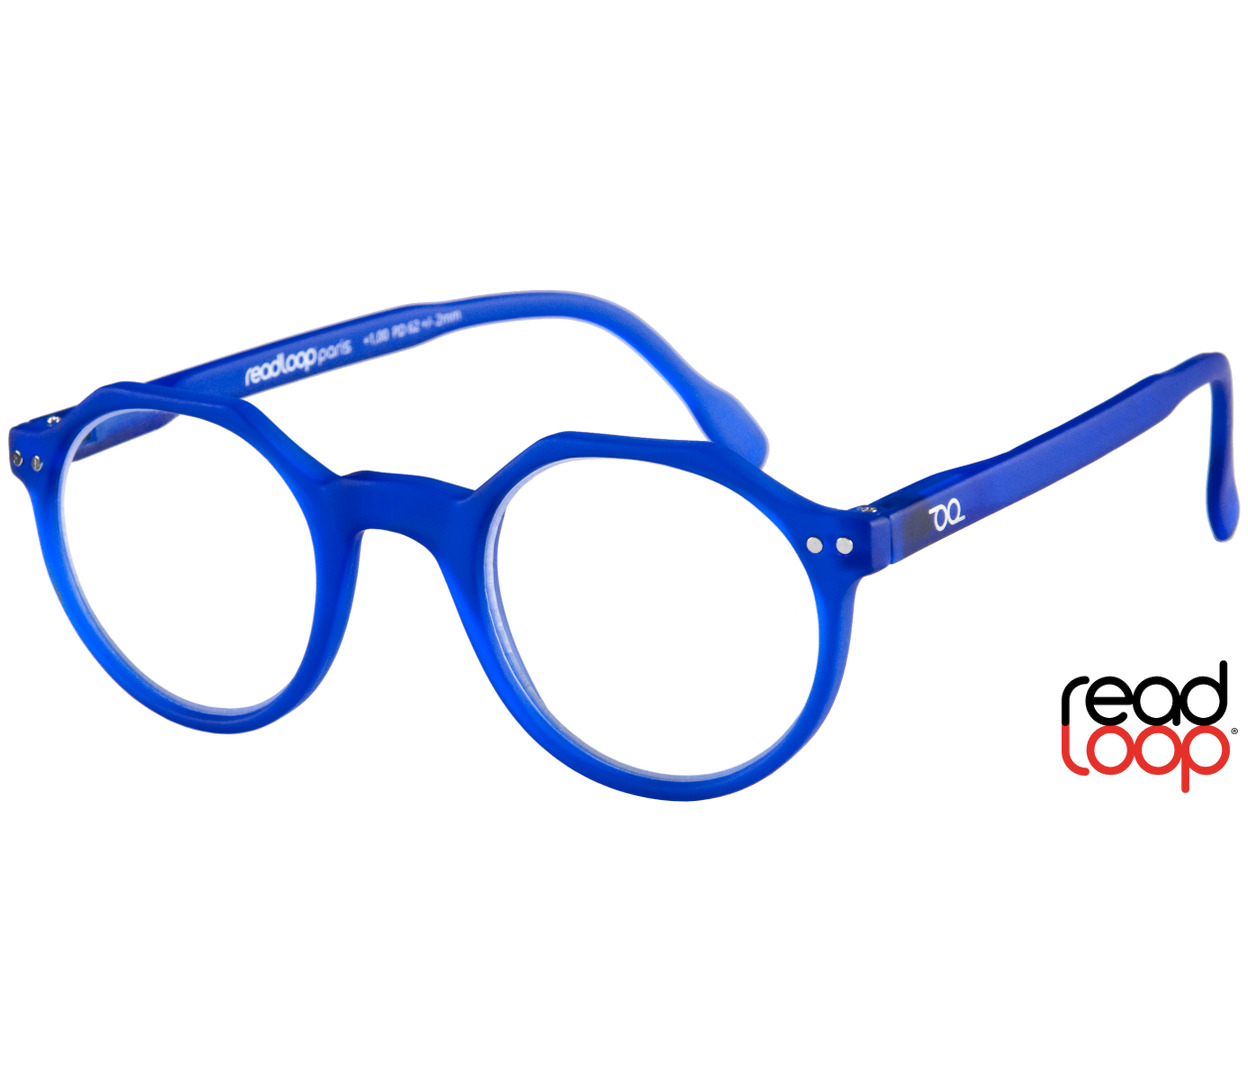 Hurricane (Blue) Retro Reading Glasses